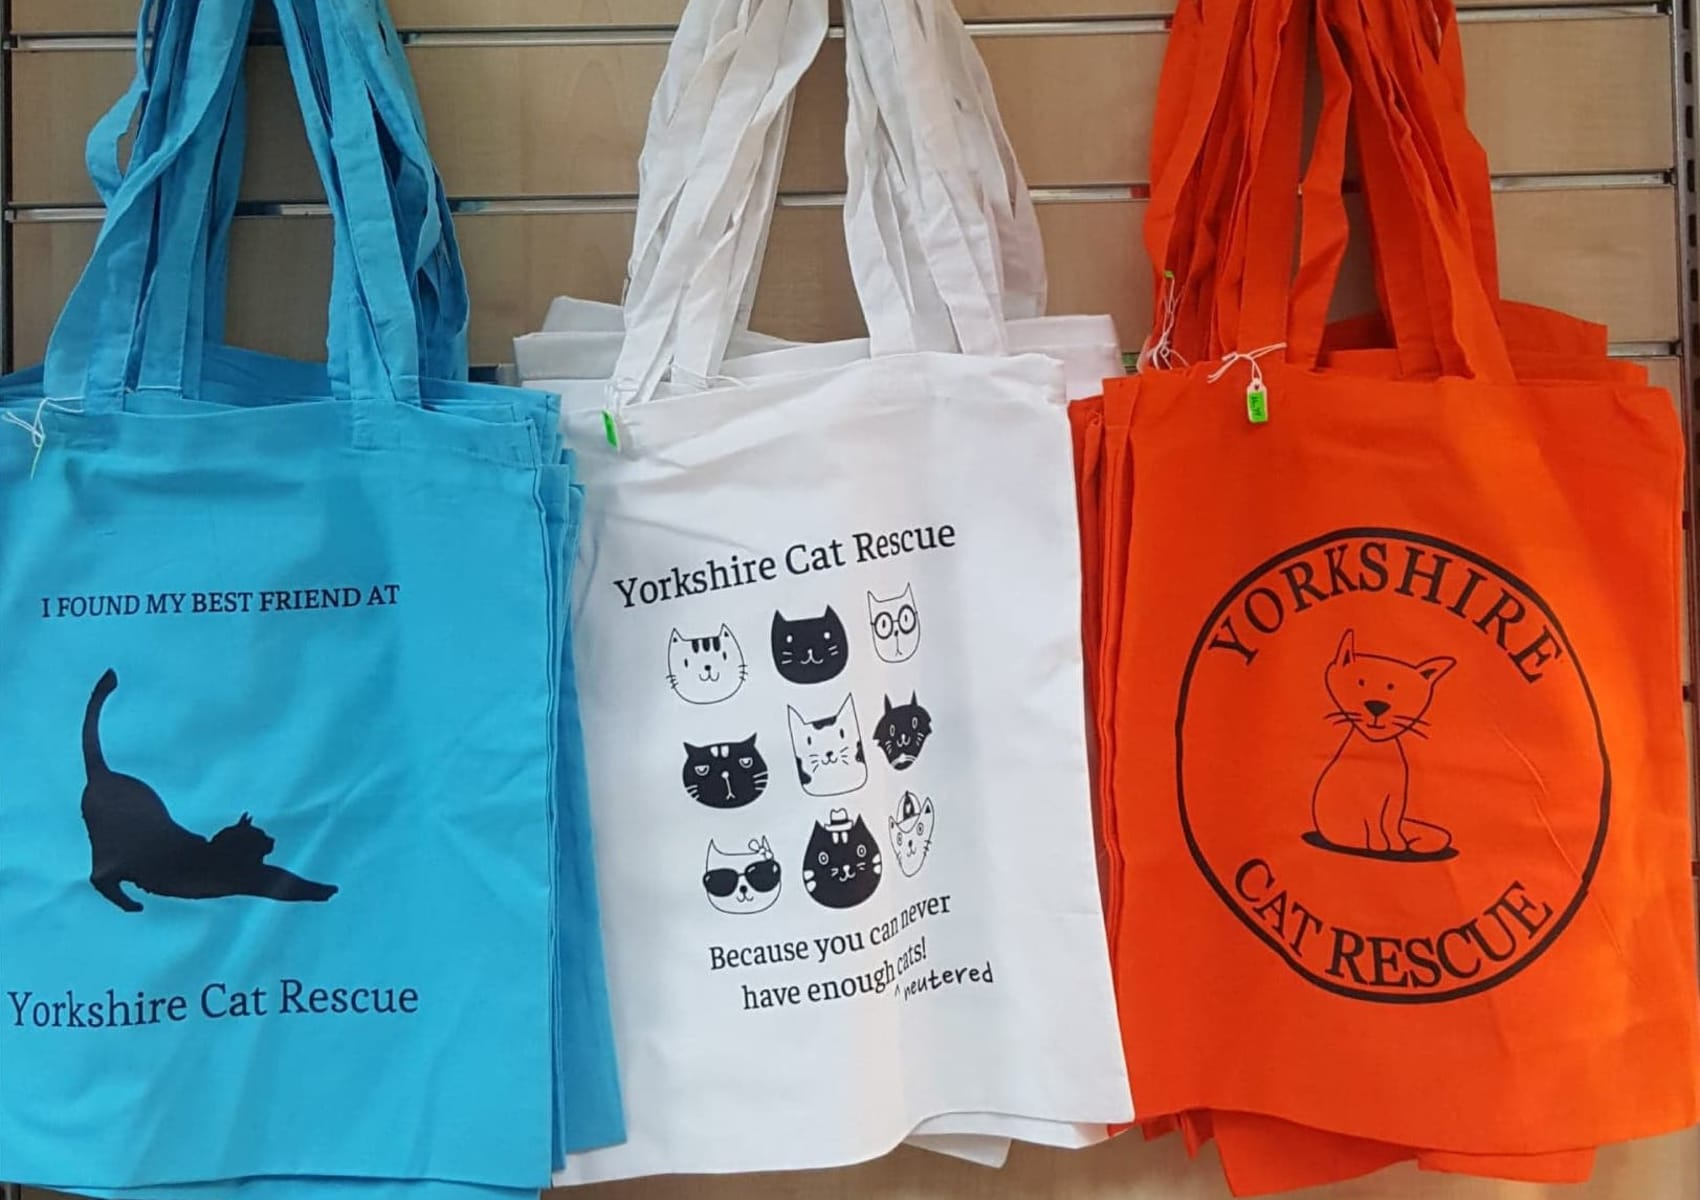 Blue tote bag - I found my best friend at Yorkshire Cat Rescue